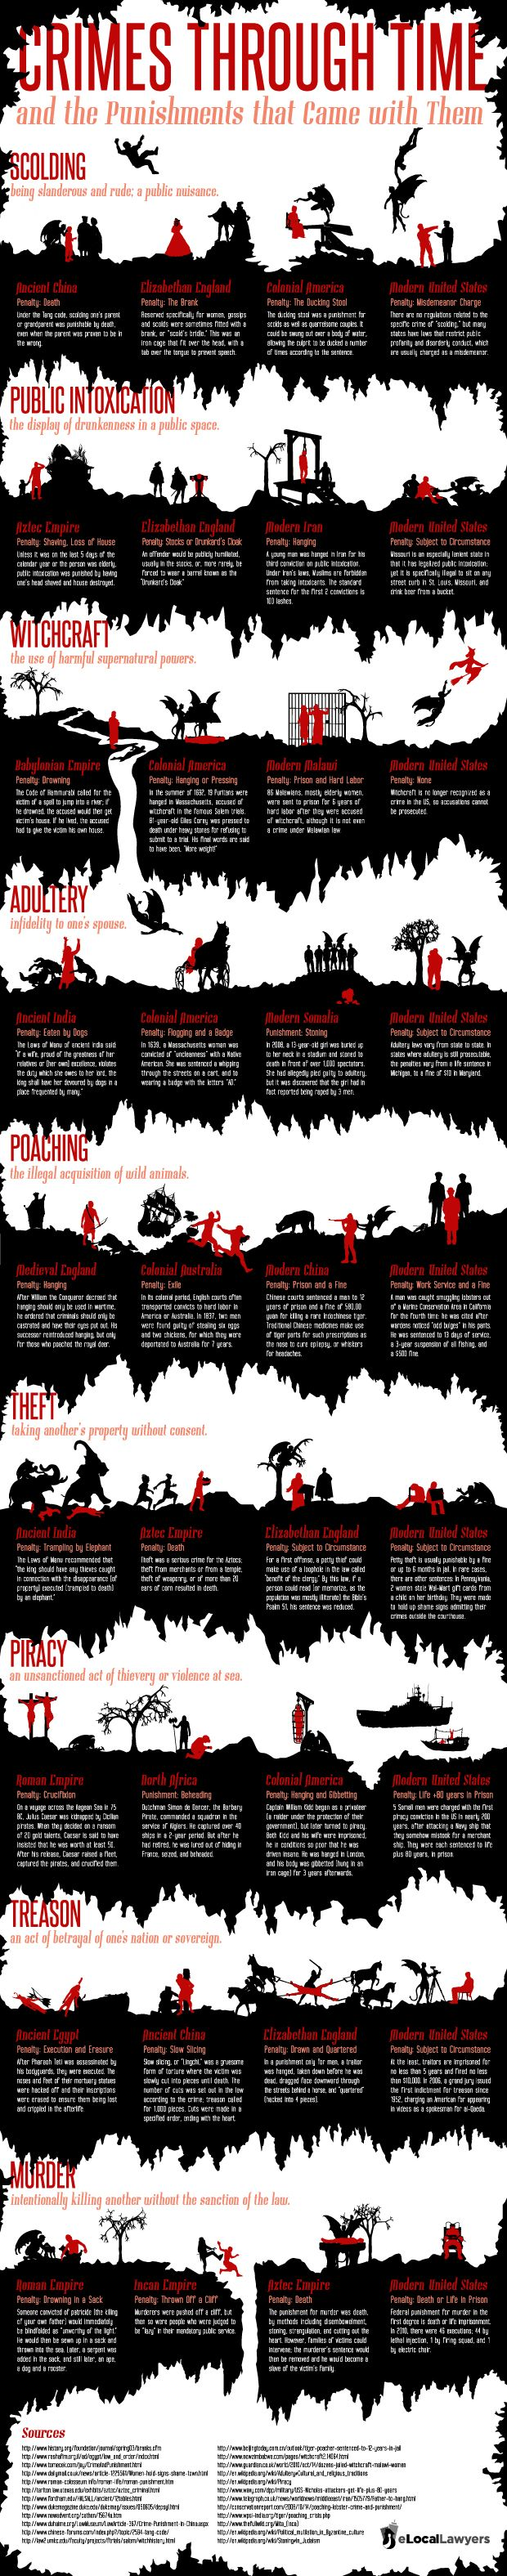 Crimes Through Time Infographic